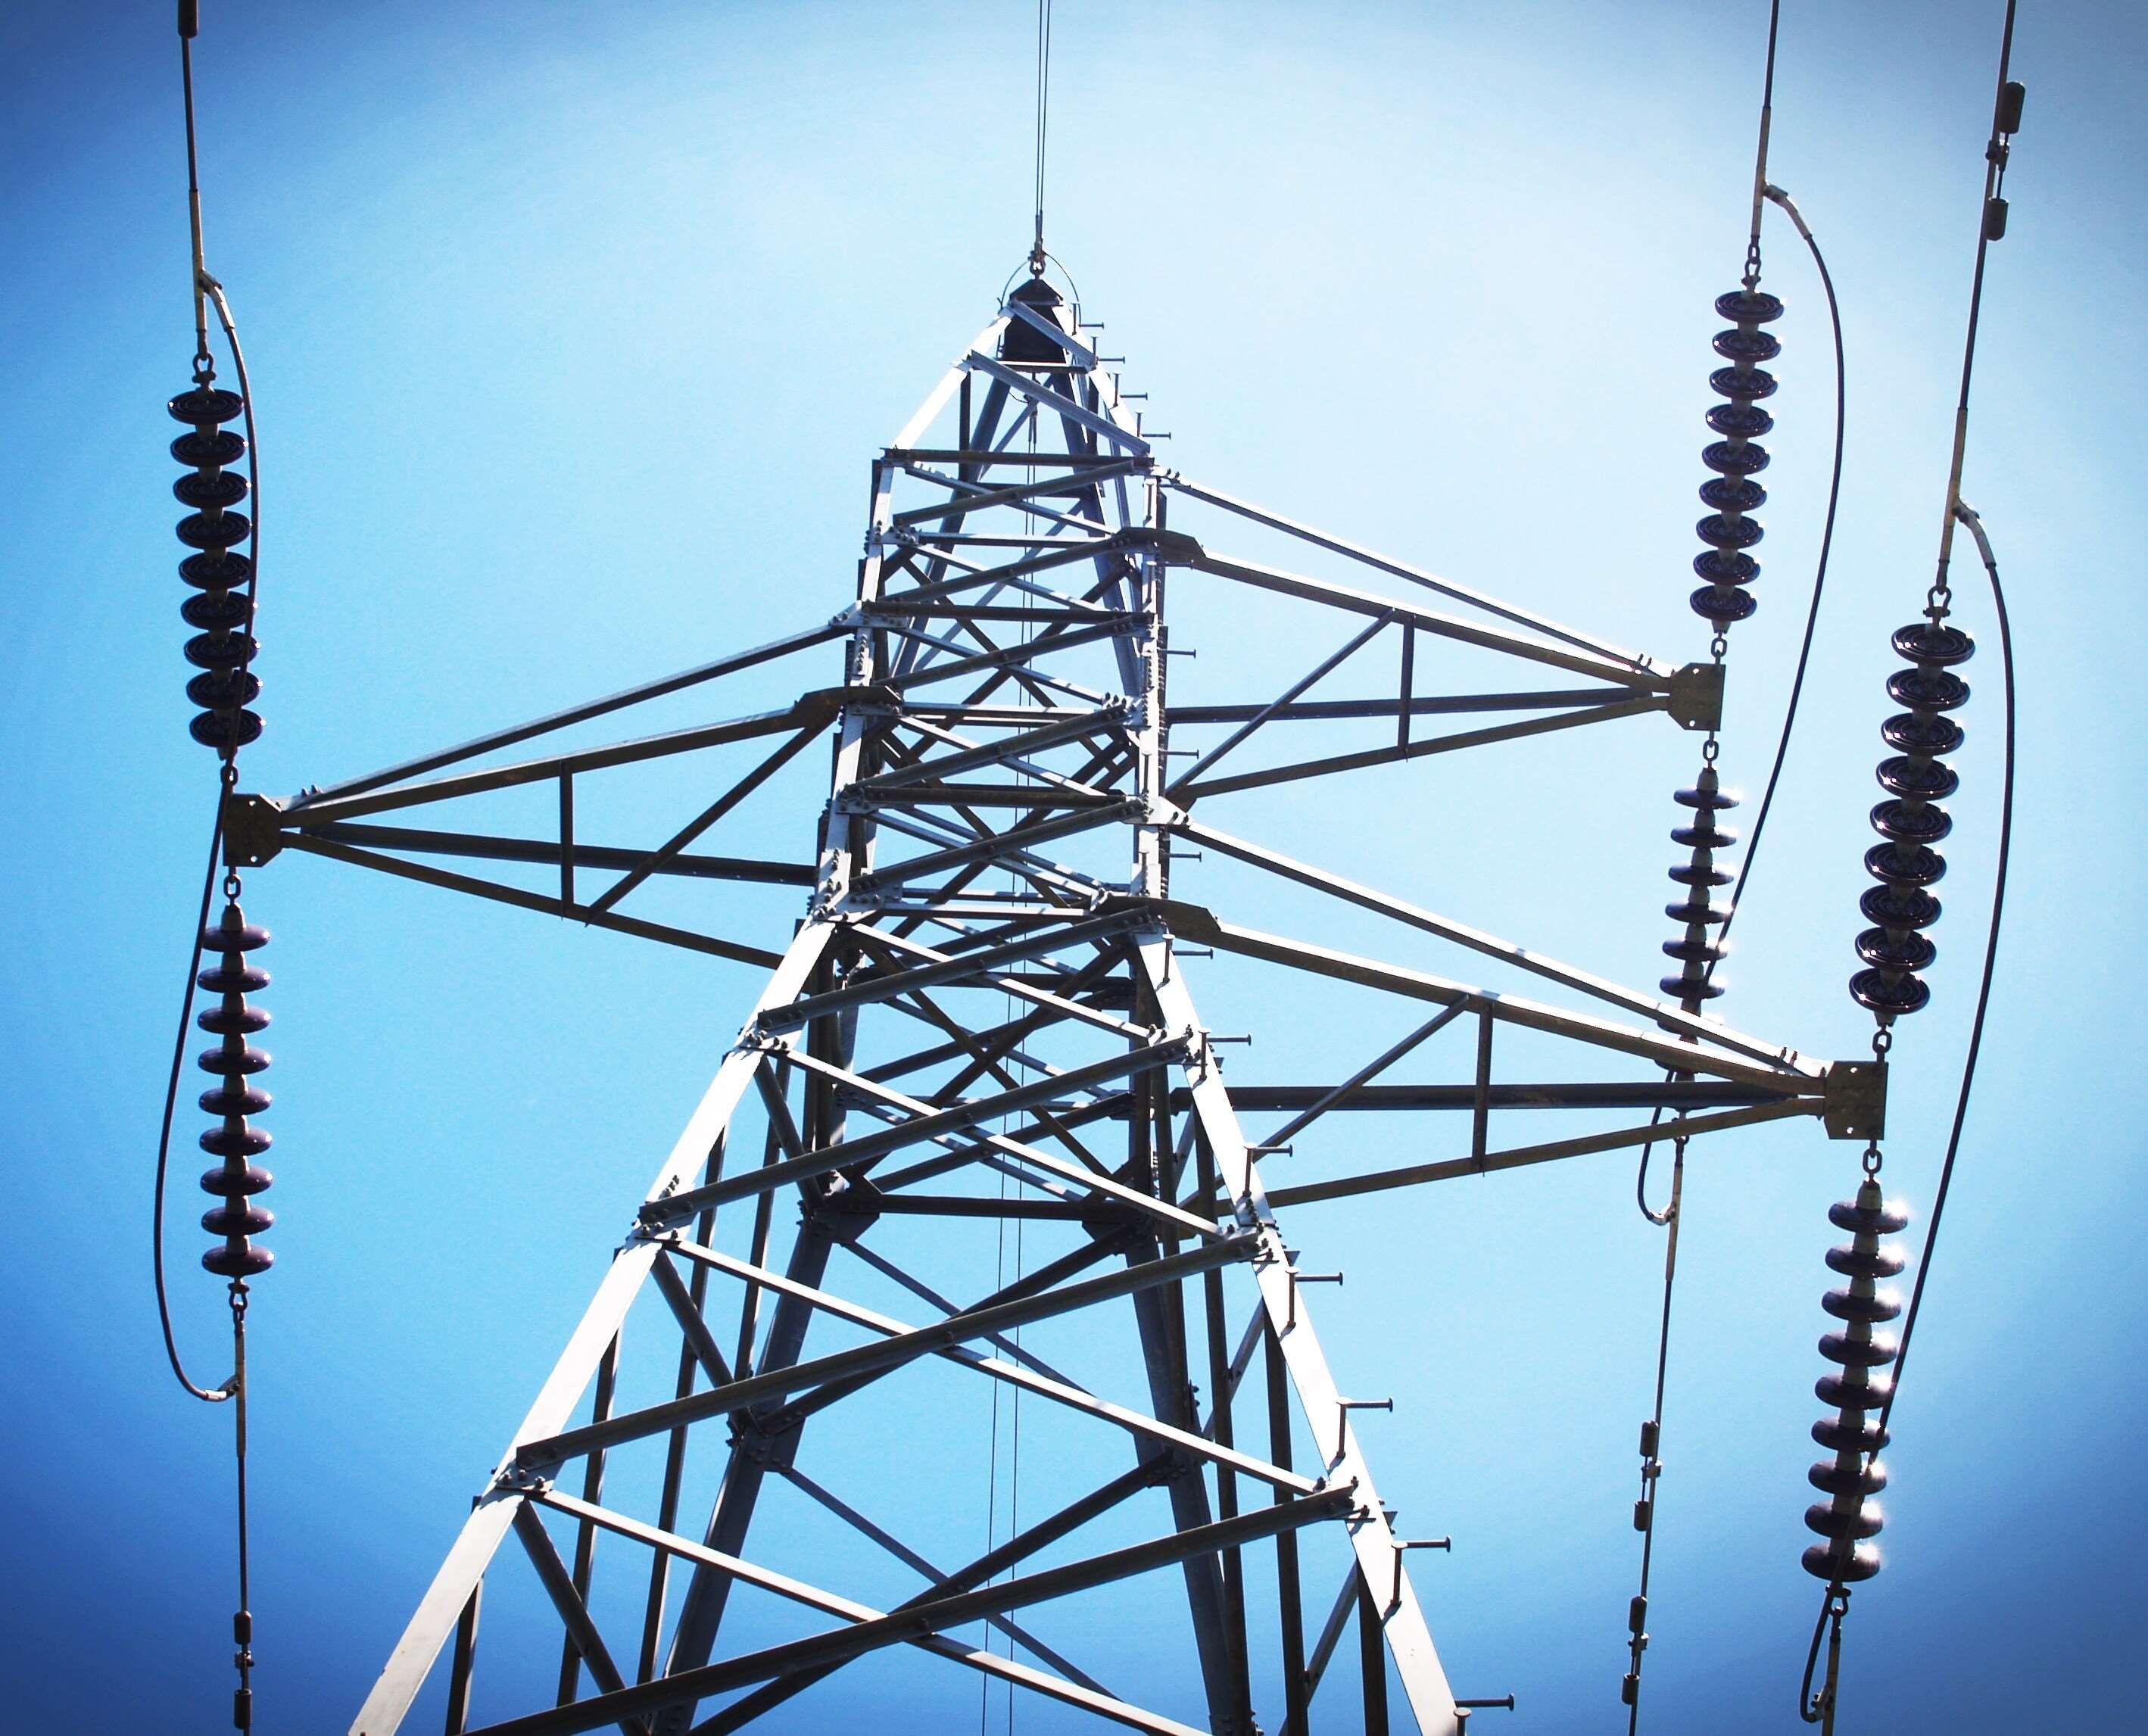 Blue Bright Cable Distribution Electric Electrical Electricity Energy Engineering Generator Grid Hi Electricity Electrical Grid Engineering Careers